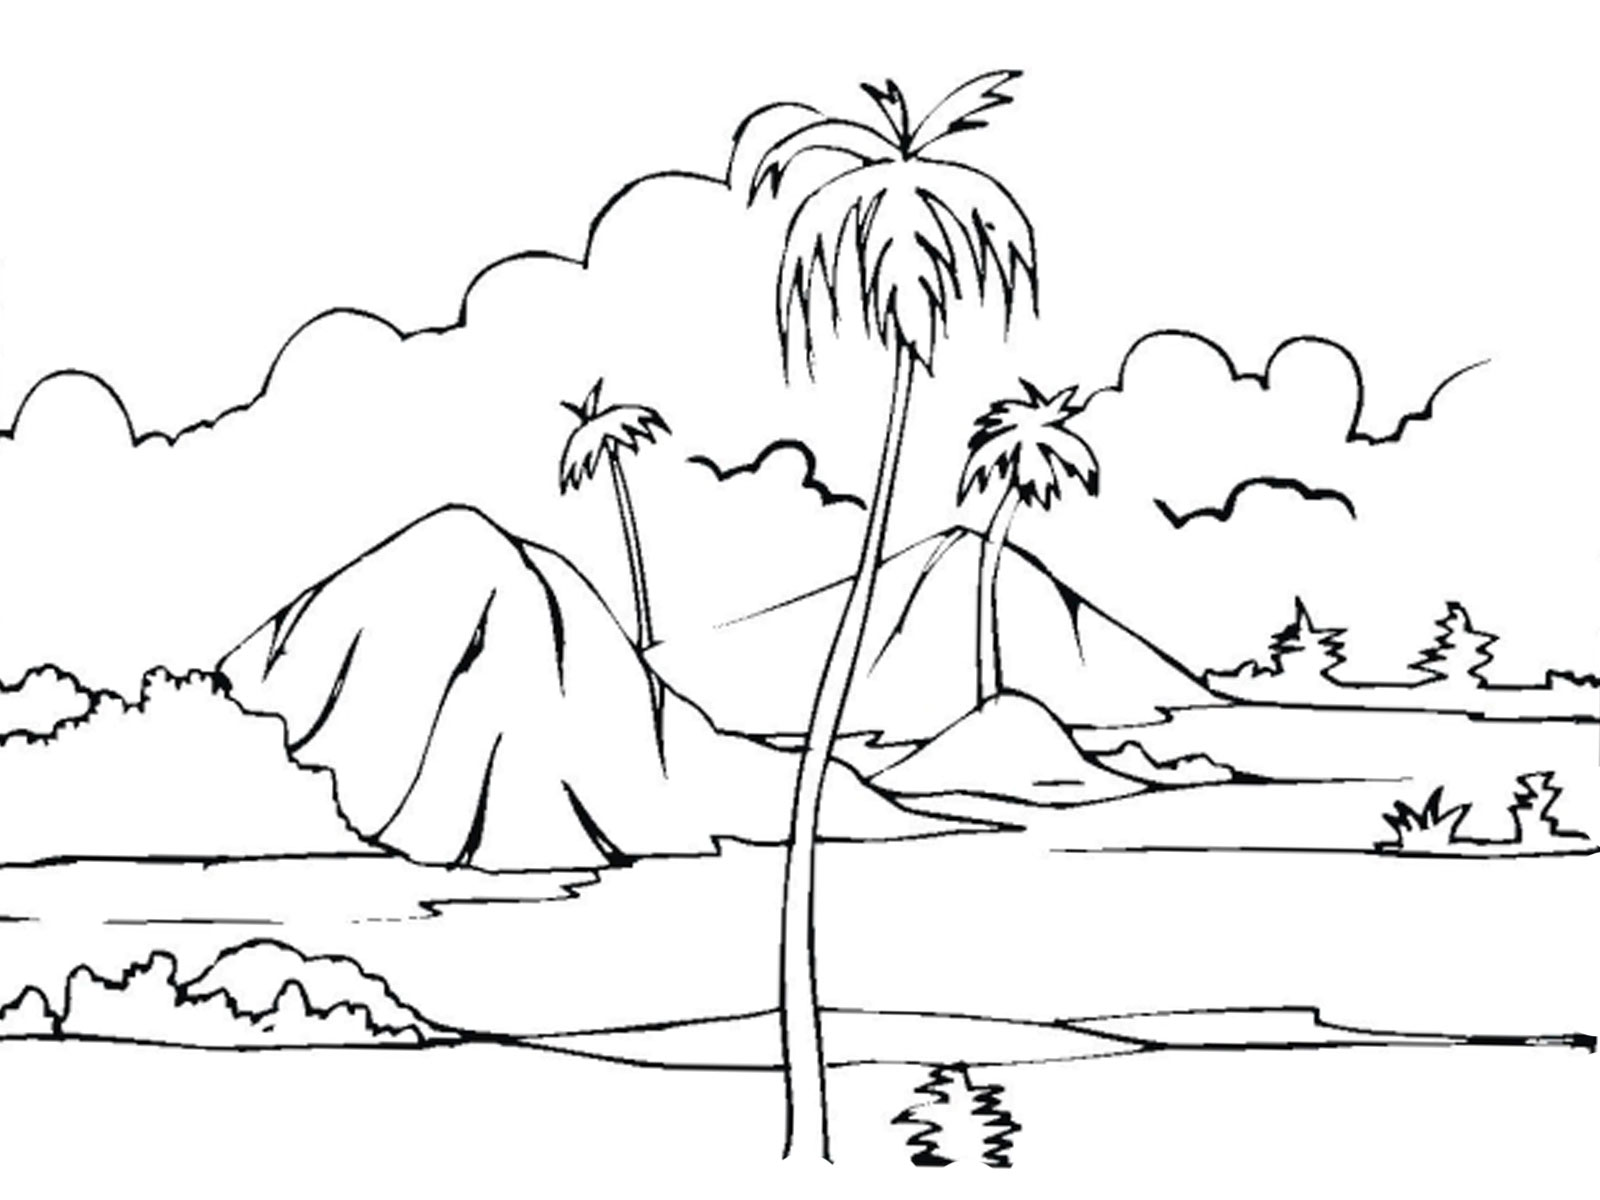 coloring nature images free printable nature coloring pages for kids best coloring nature images 1 1